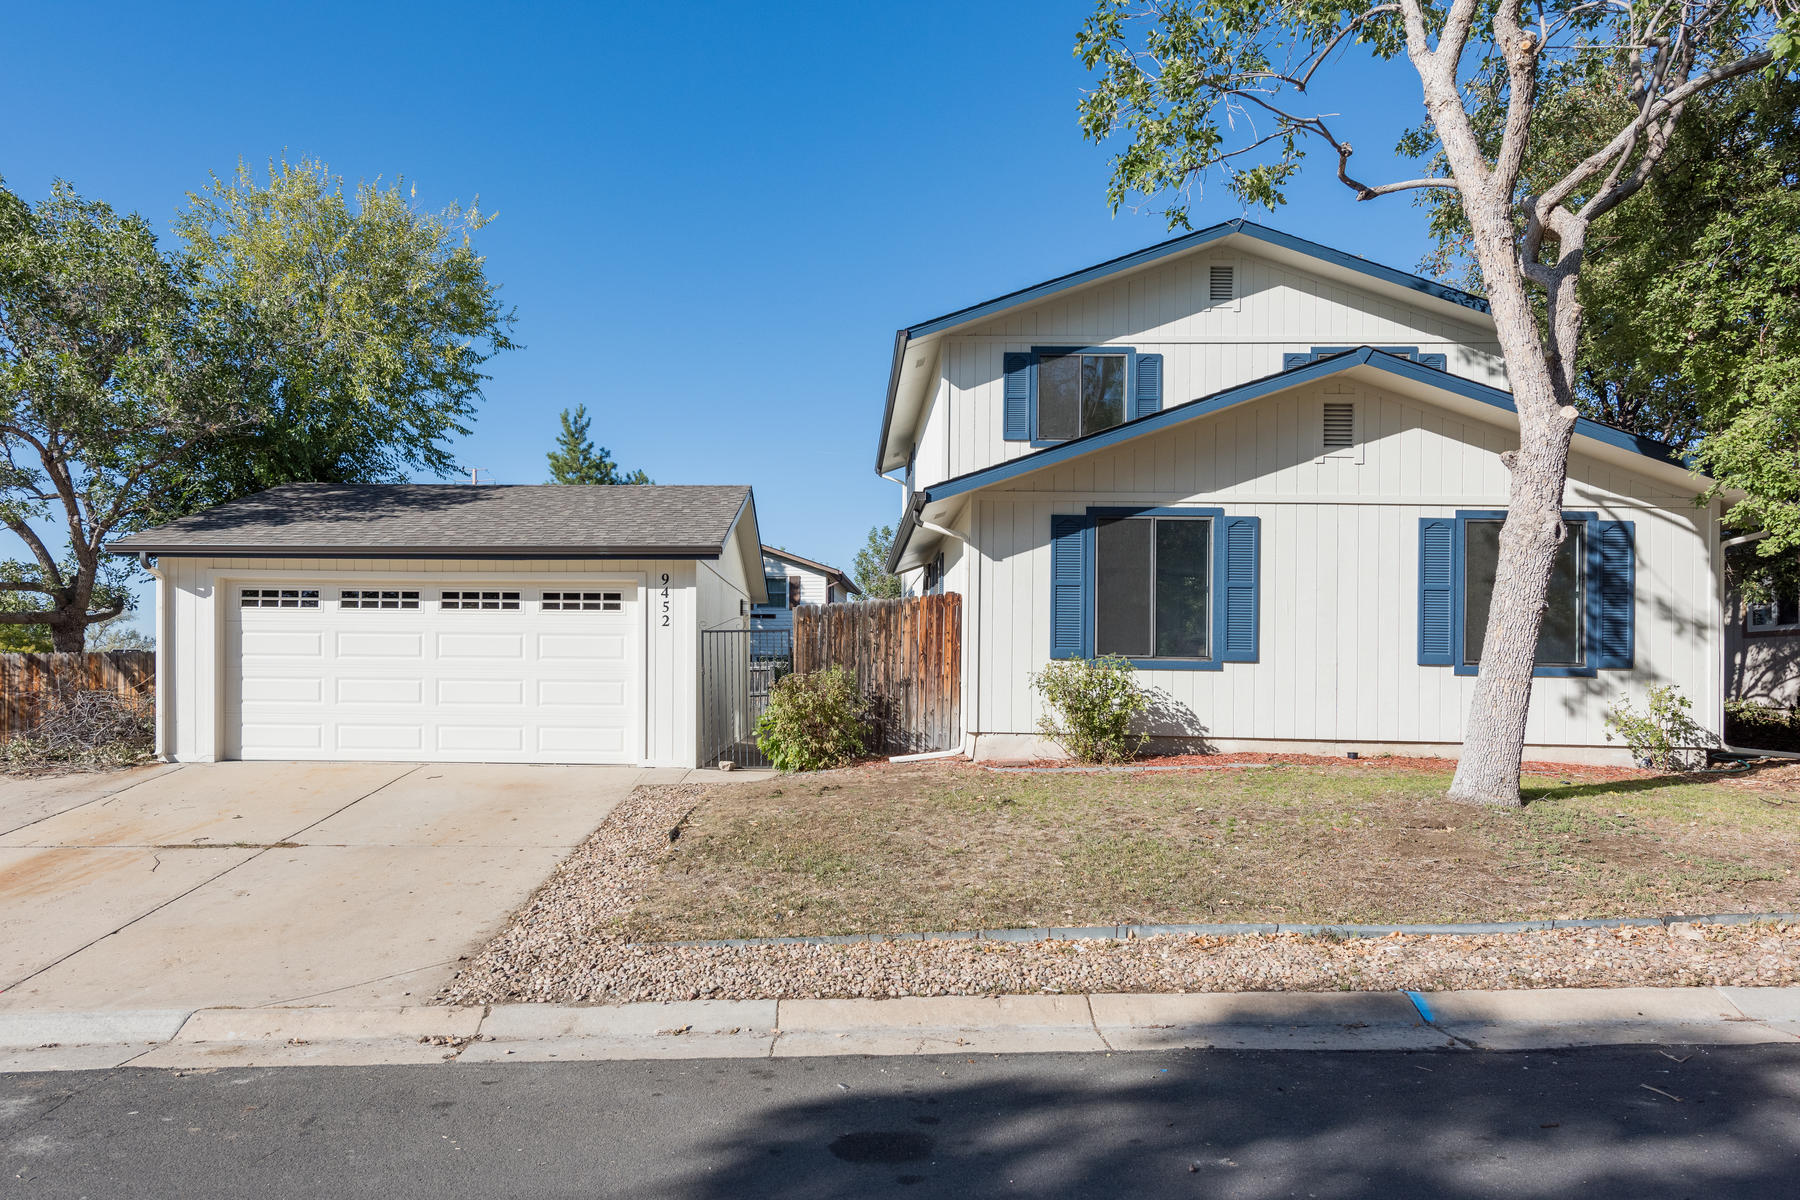 Single Family Homes for Sale at Two-story home on a corner double lot in Westminster 9452 Pierce St Westminster, Colorado 80221 United States